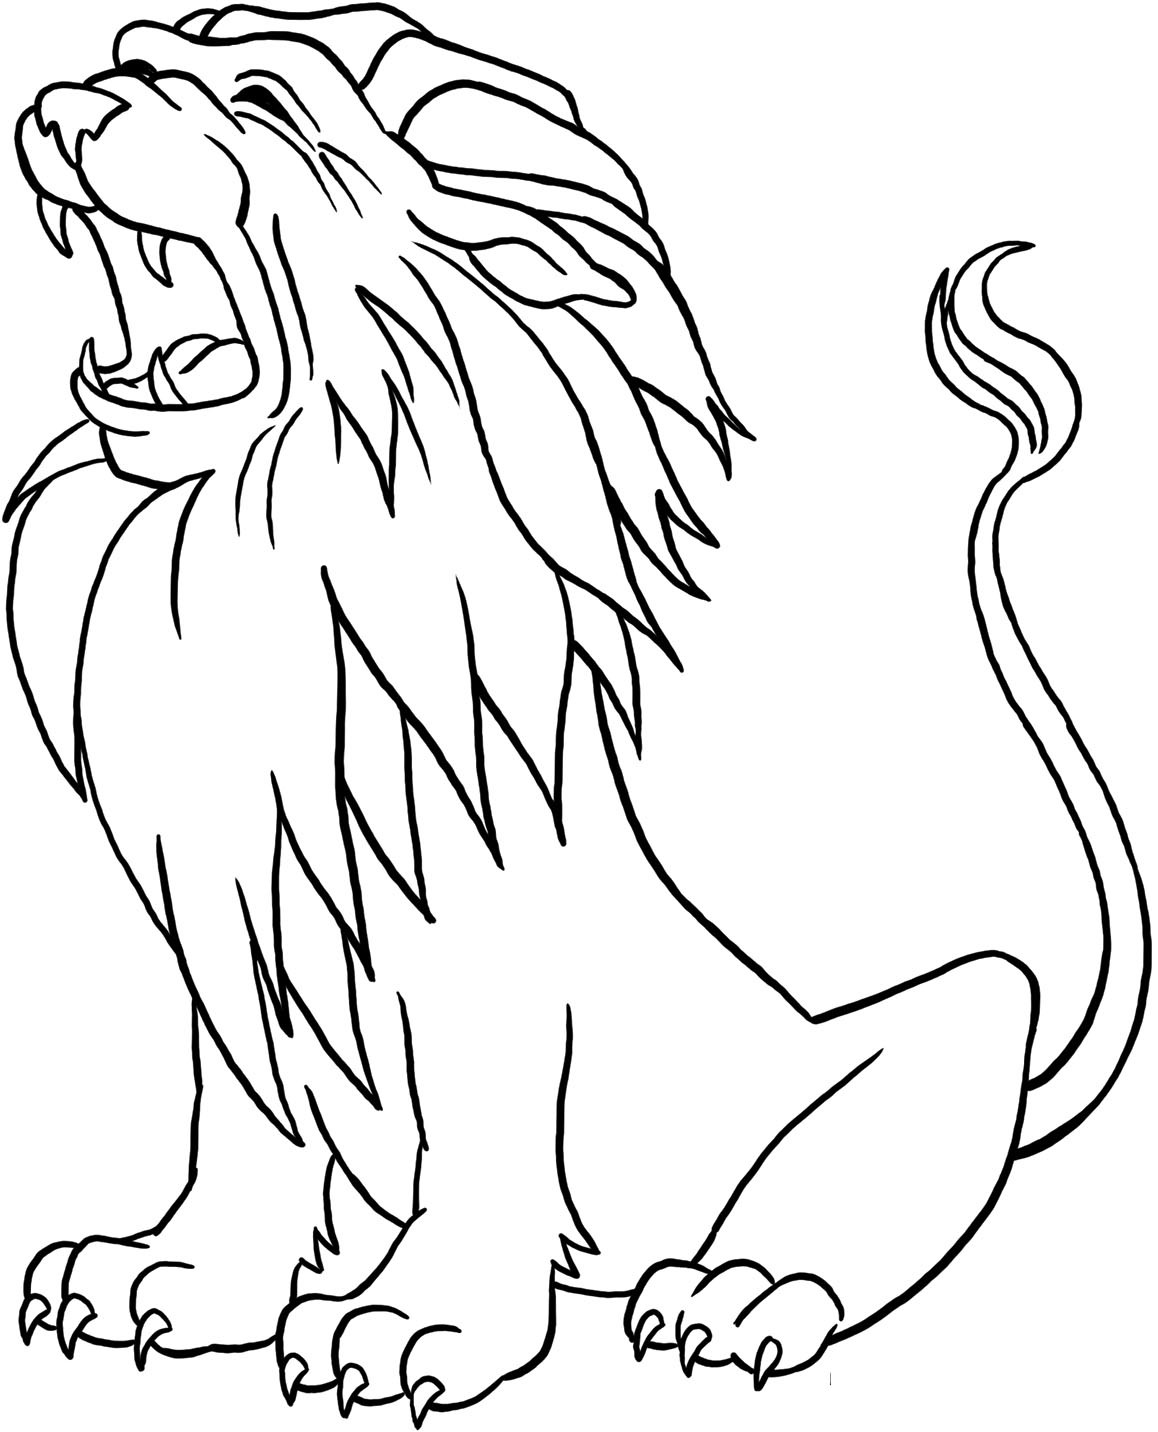 1158x1432 Lion Face Coloring Page Lioness Head Ebestbuyvn Co Tearing Wagashiya